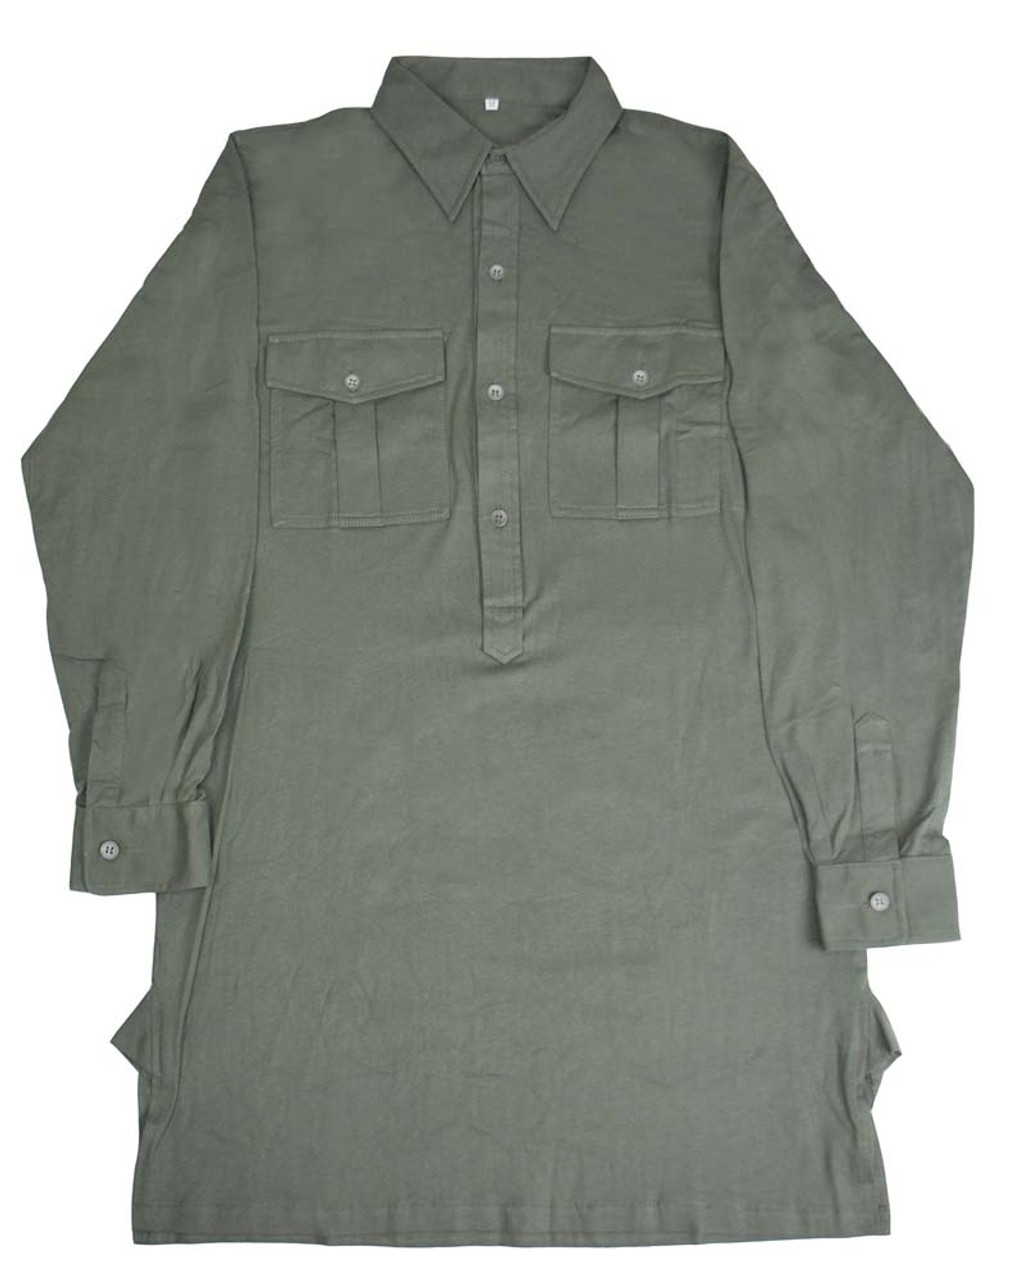 Tricot Knit Service Shirt With Pockets